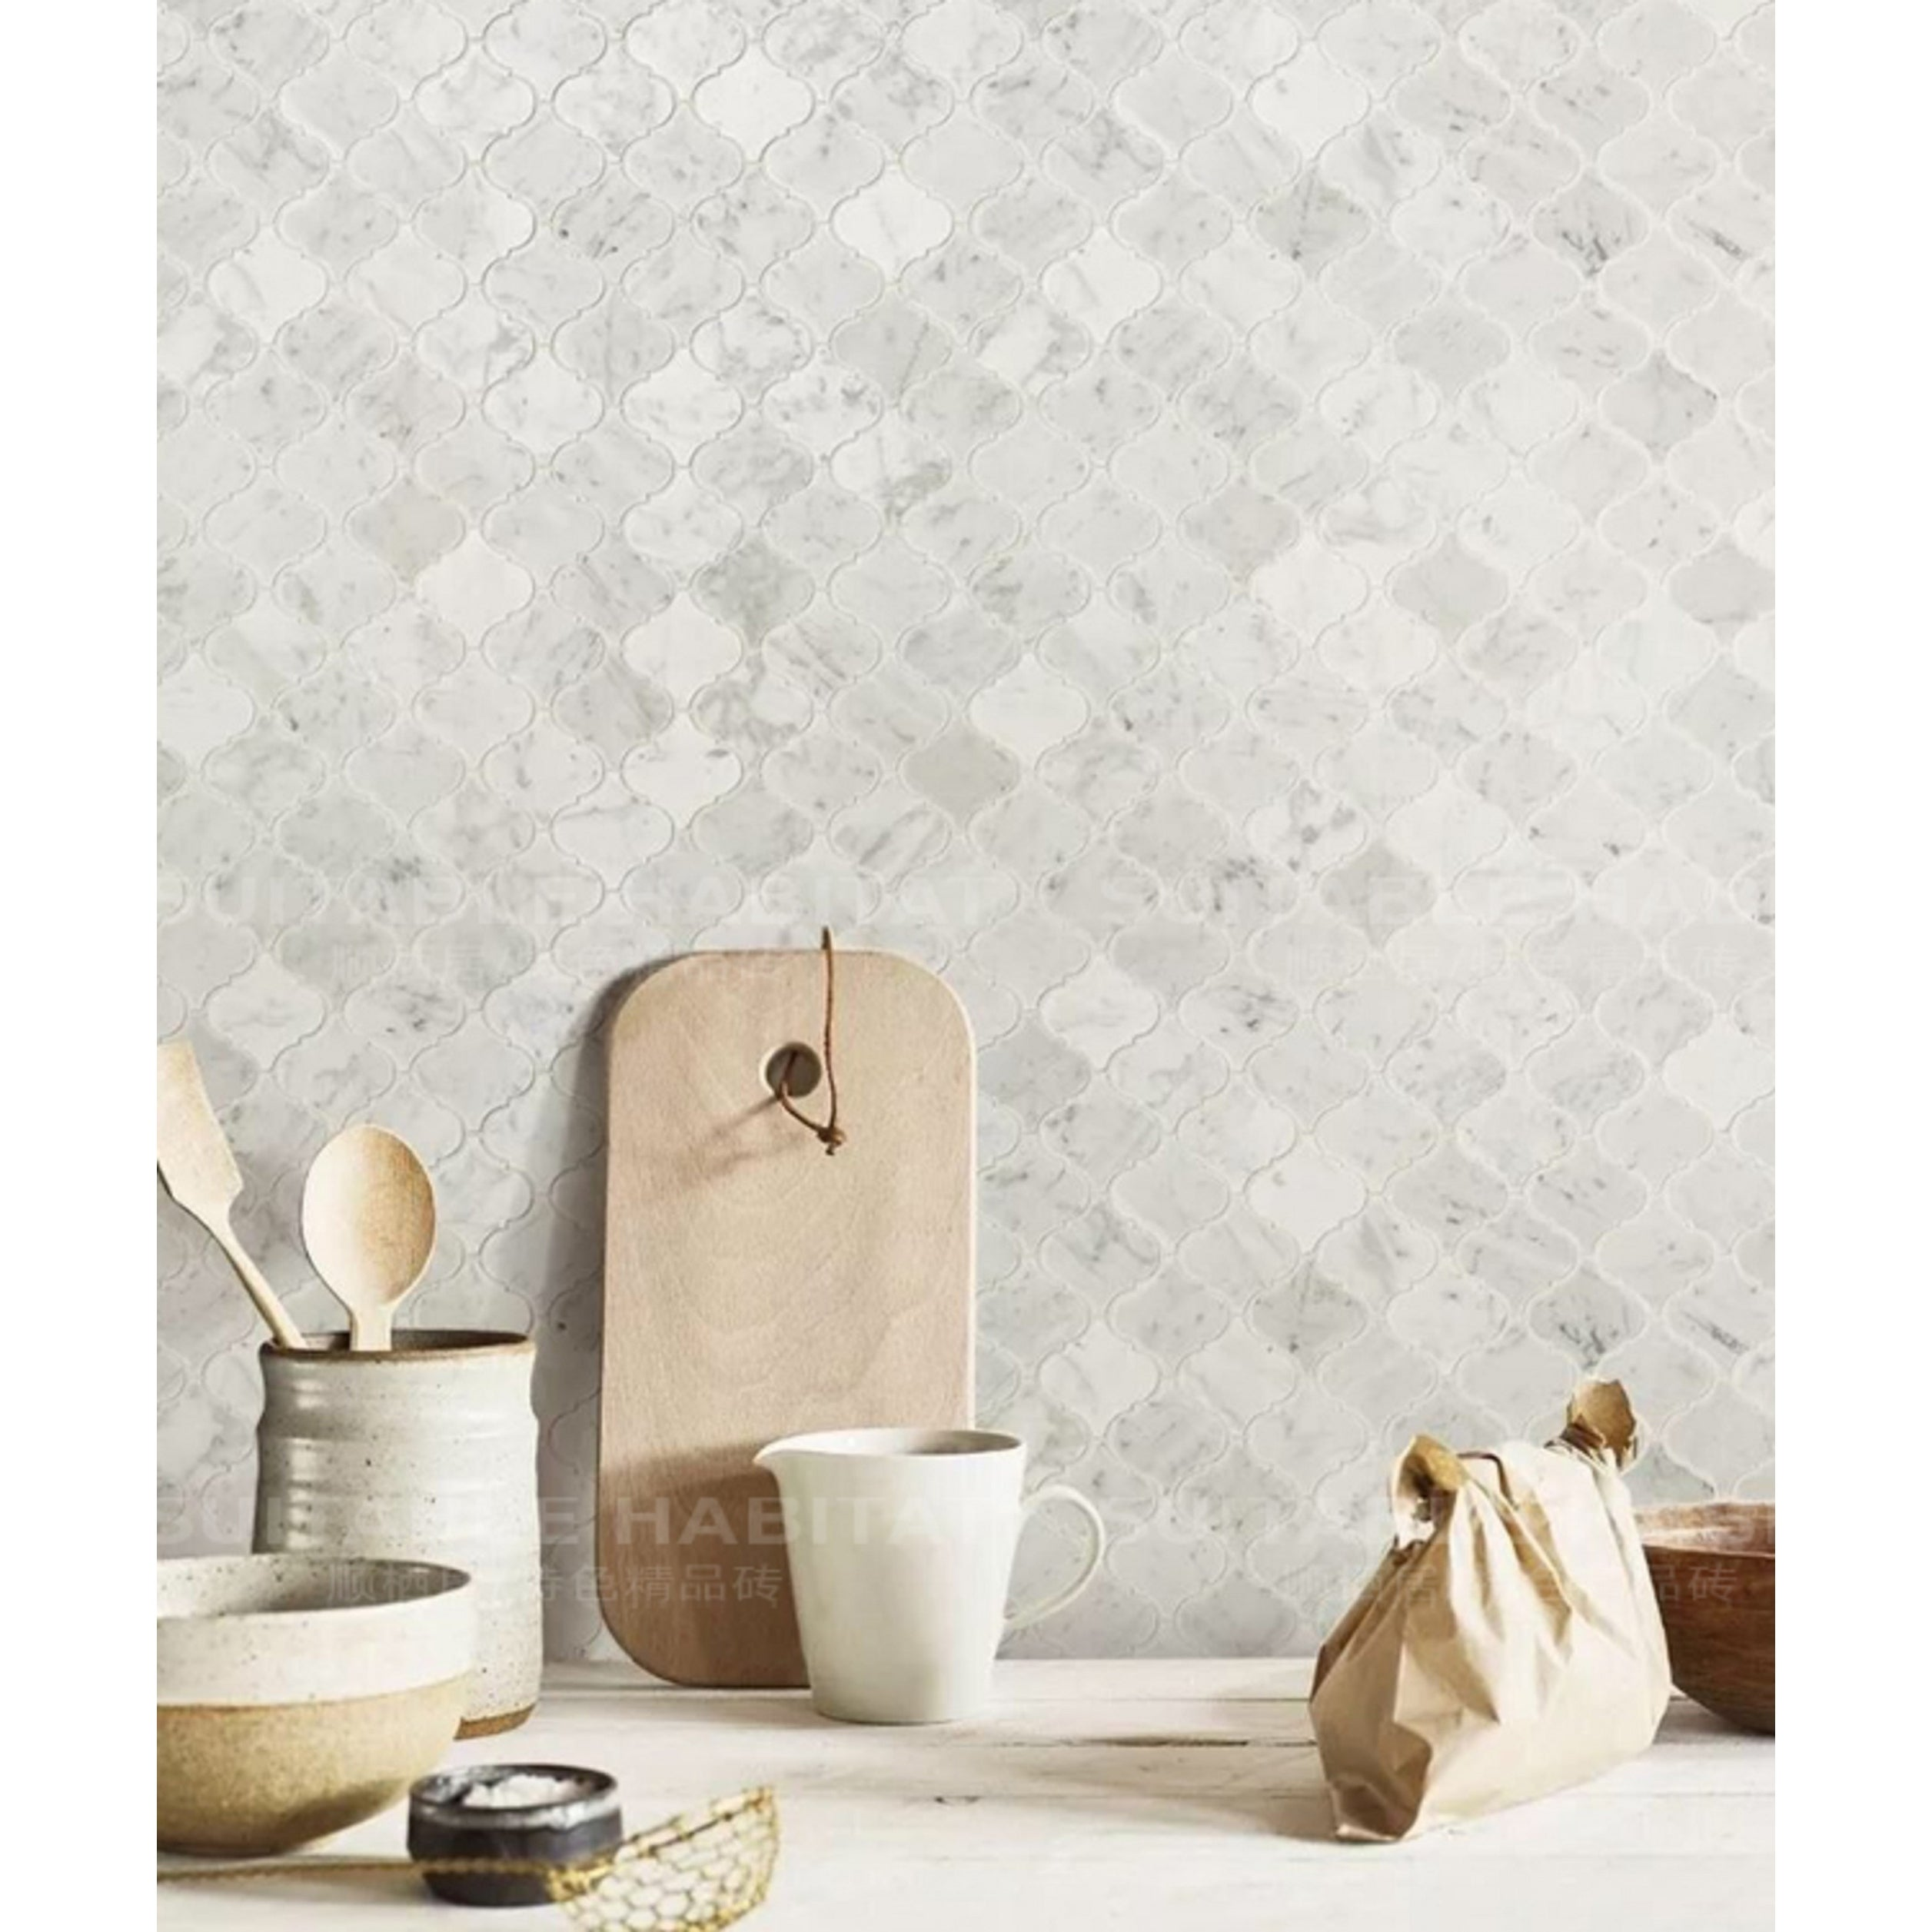 Shop For Carrara Marble Mosaic Decorative Backsplash Tile 12 X 12 X 0 38 Pc Get Free Delivery On Everything At Overstock Your Online Home Improvement Shop Get 5 In Rewards With Club O 30865913